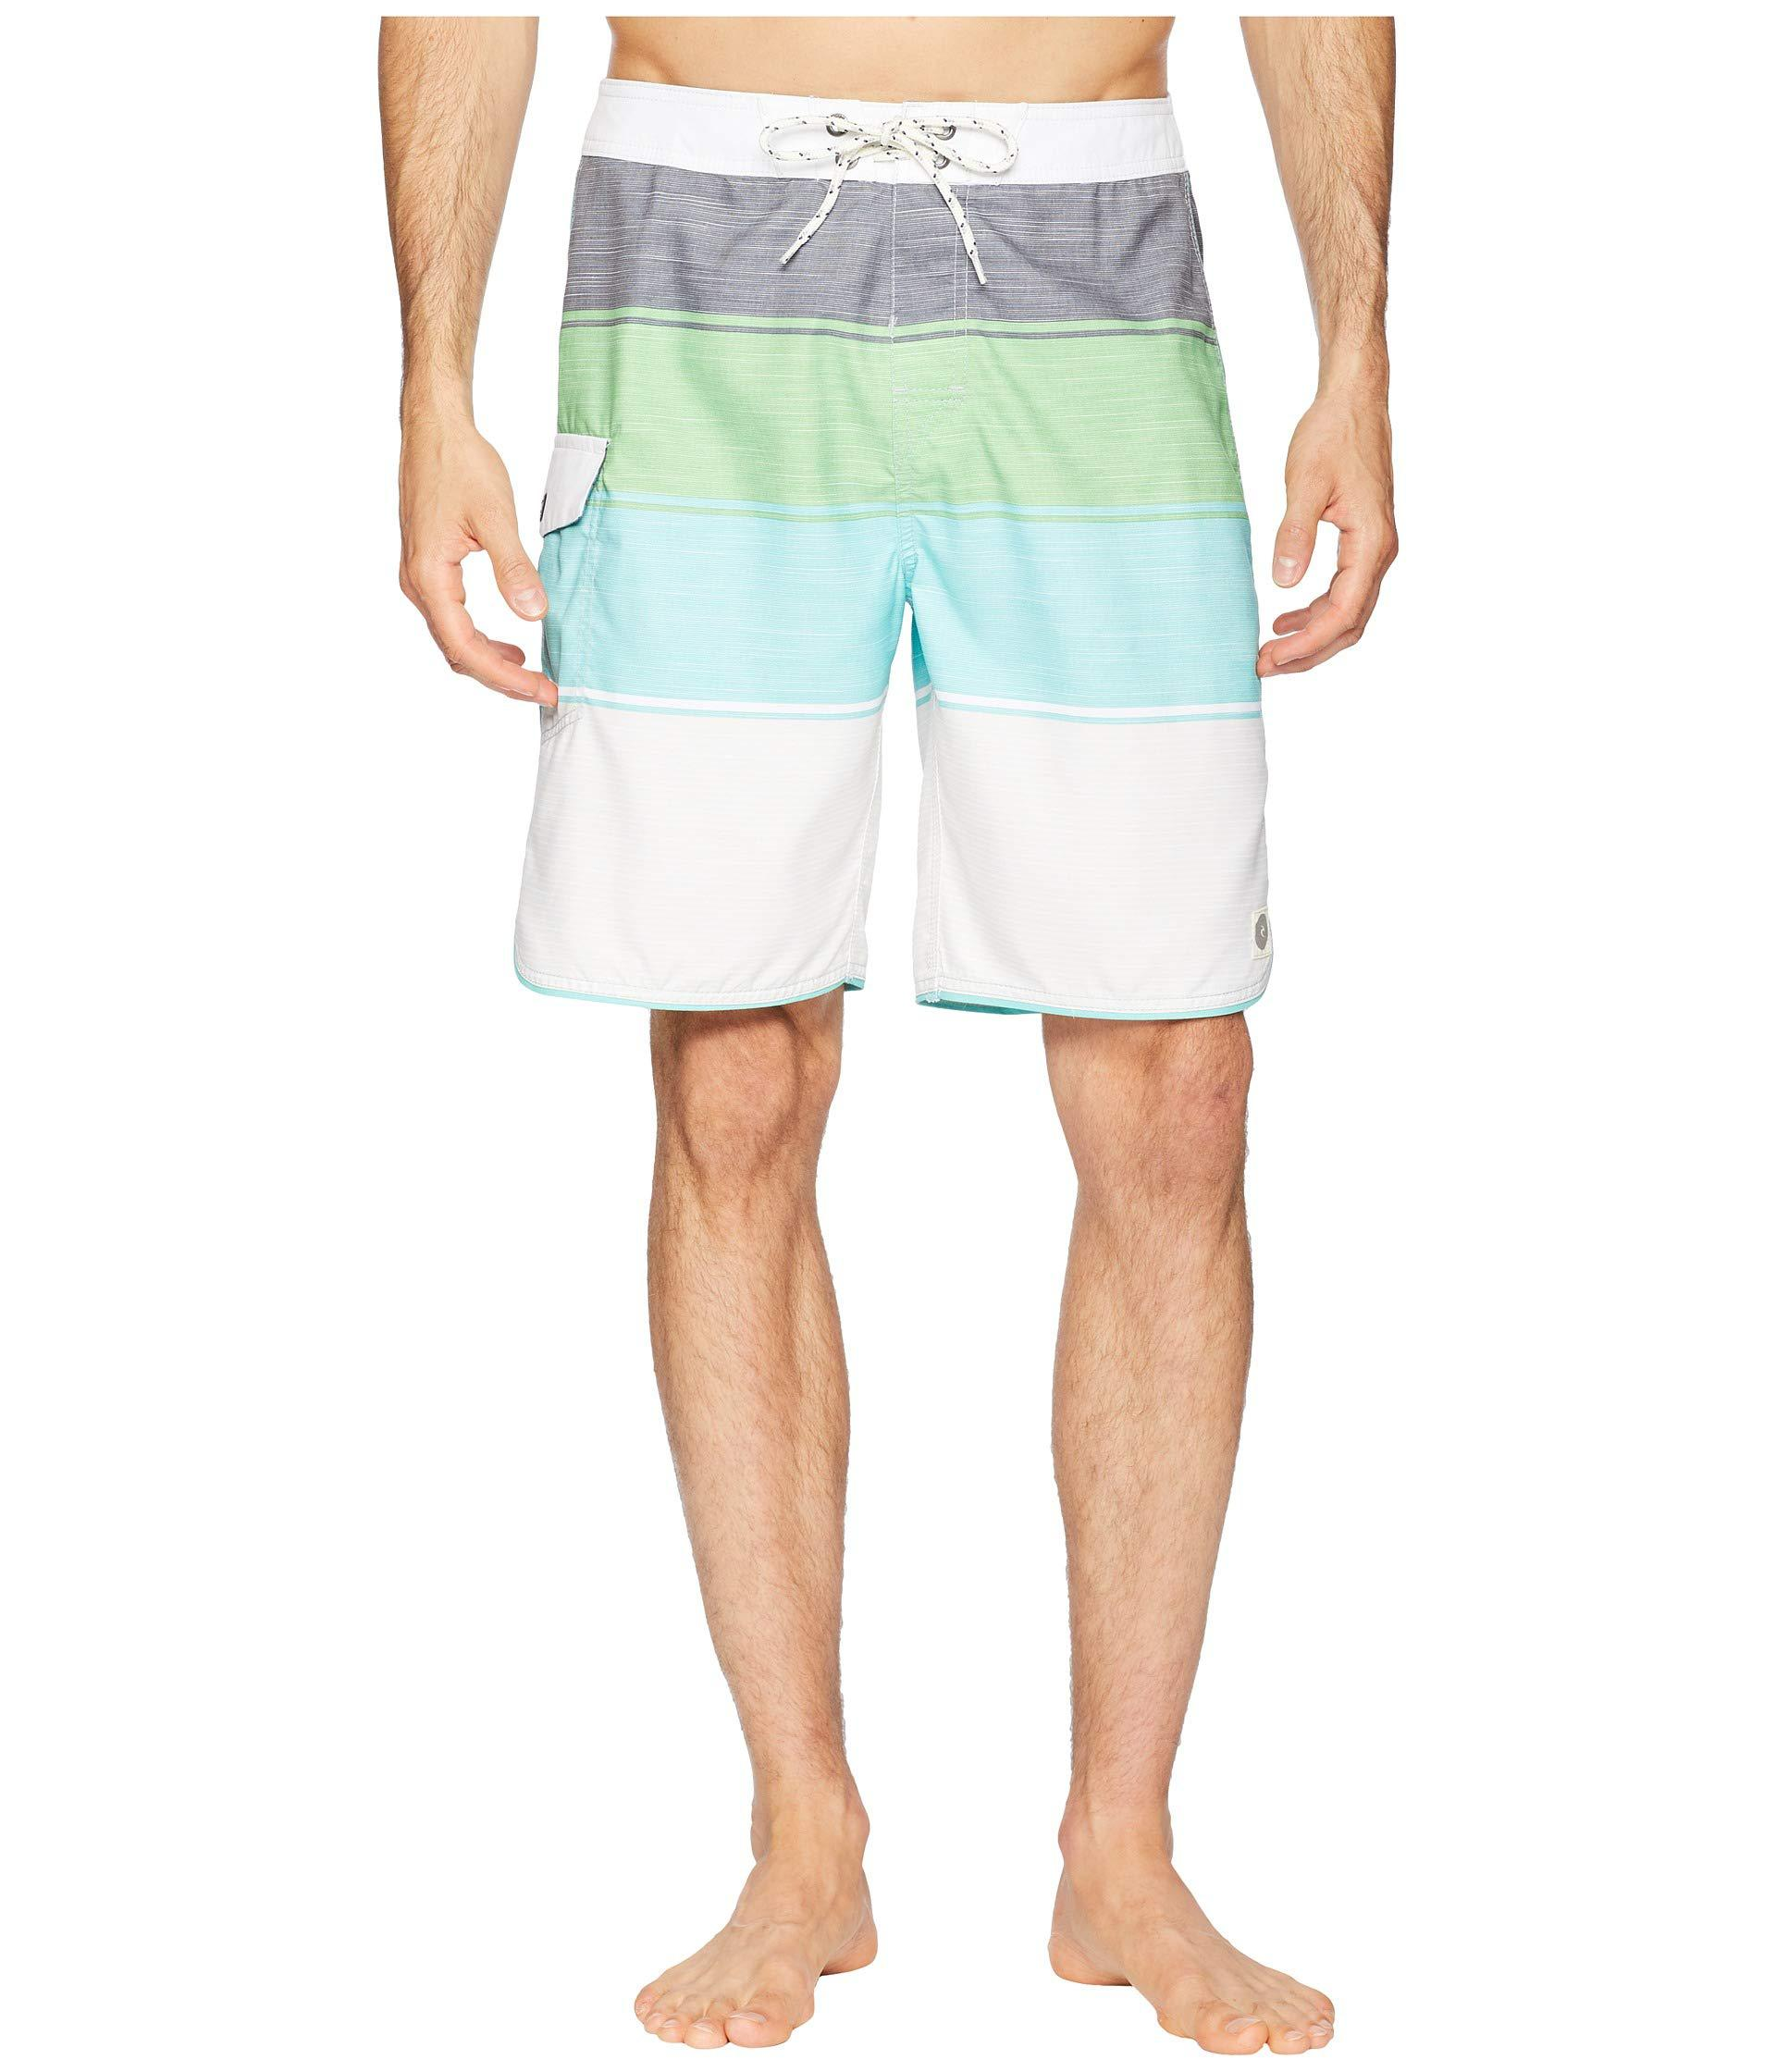 43156f7842 Lyst - Rip Curl Good Times Boardshorts in Green for Men - Save 26%